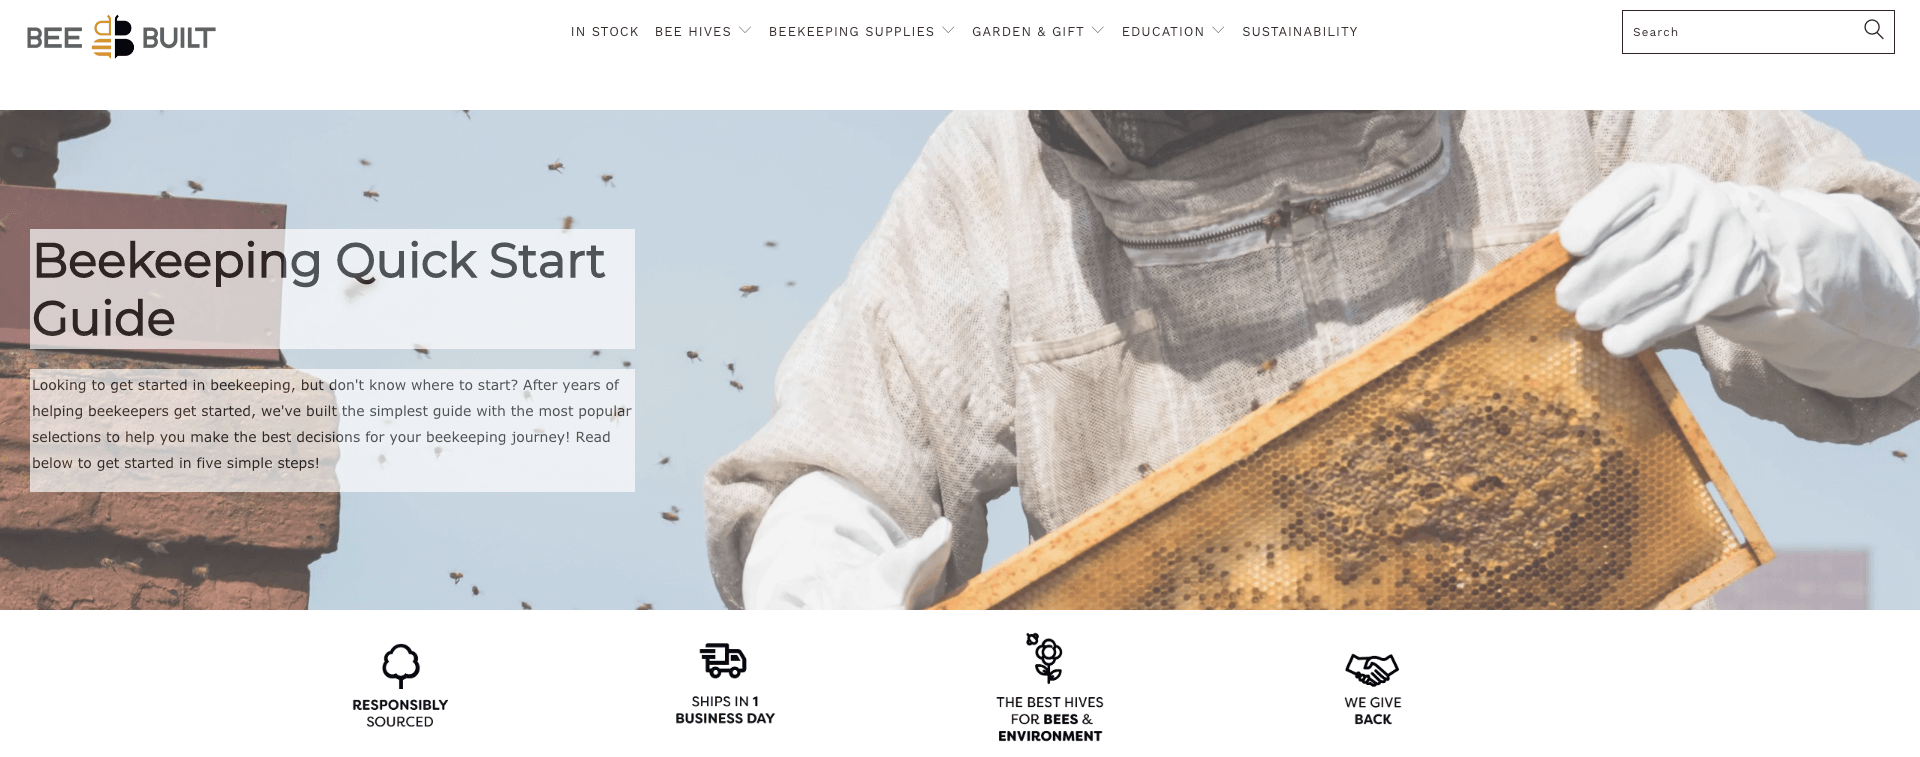 Bee Built website 2020